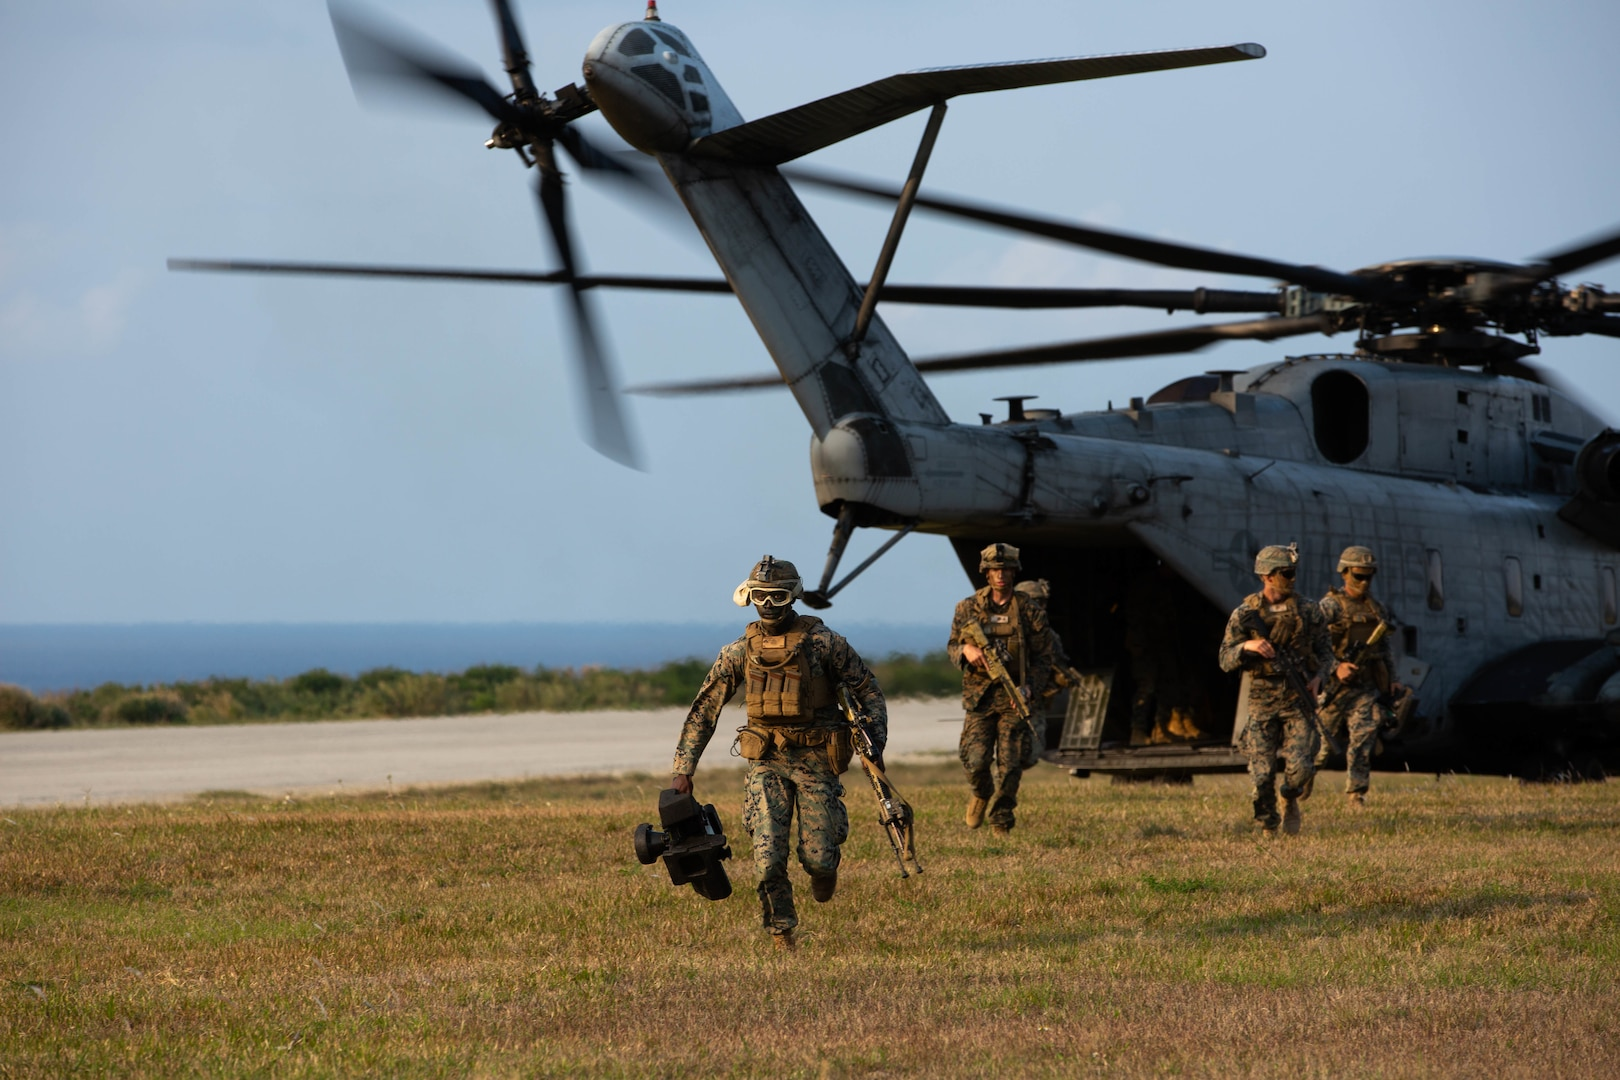 U.S. Marines with 3d Battalion, 8th Marine Regiment, exit a CH-53E Super Stallion during Castaway 21.1 to conduct an air assault on Ie Shima, Okinawa, Japan March 11, 2021. The exercise demonstrated the Marine Corps' ability to integrate with the joint force to seize and defend key maritime terrain, provide low-signature sustainment, and execute long-range precision fires in support of naval operations from an expeditionary advanced base. 3/8 is currently attached to 3d Marine Division under the Unit Deployment Program.